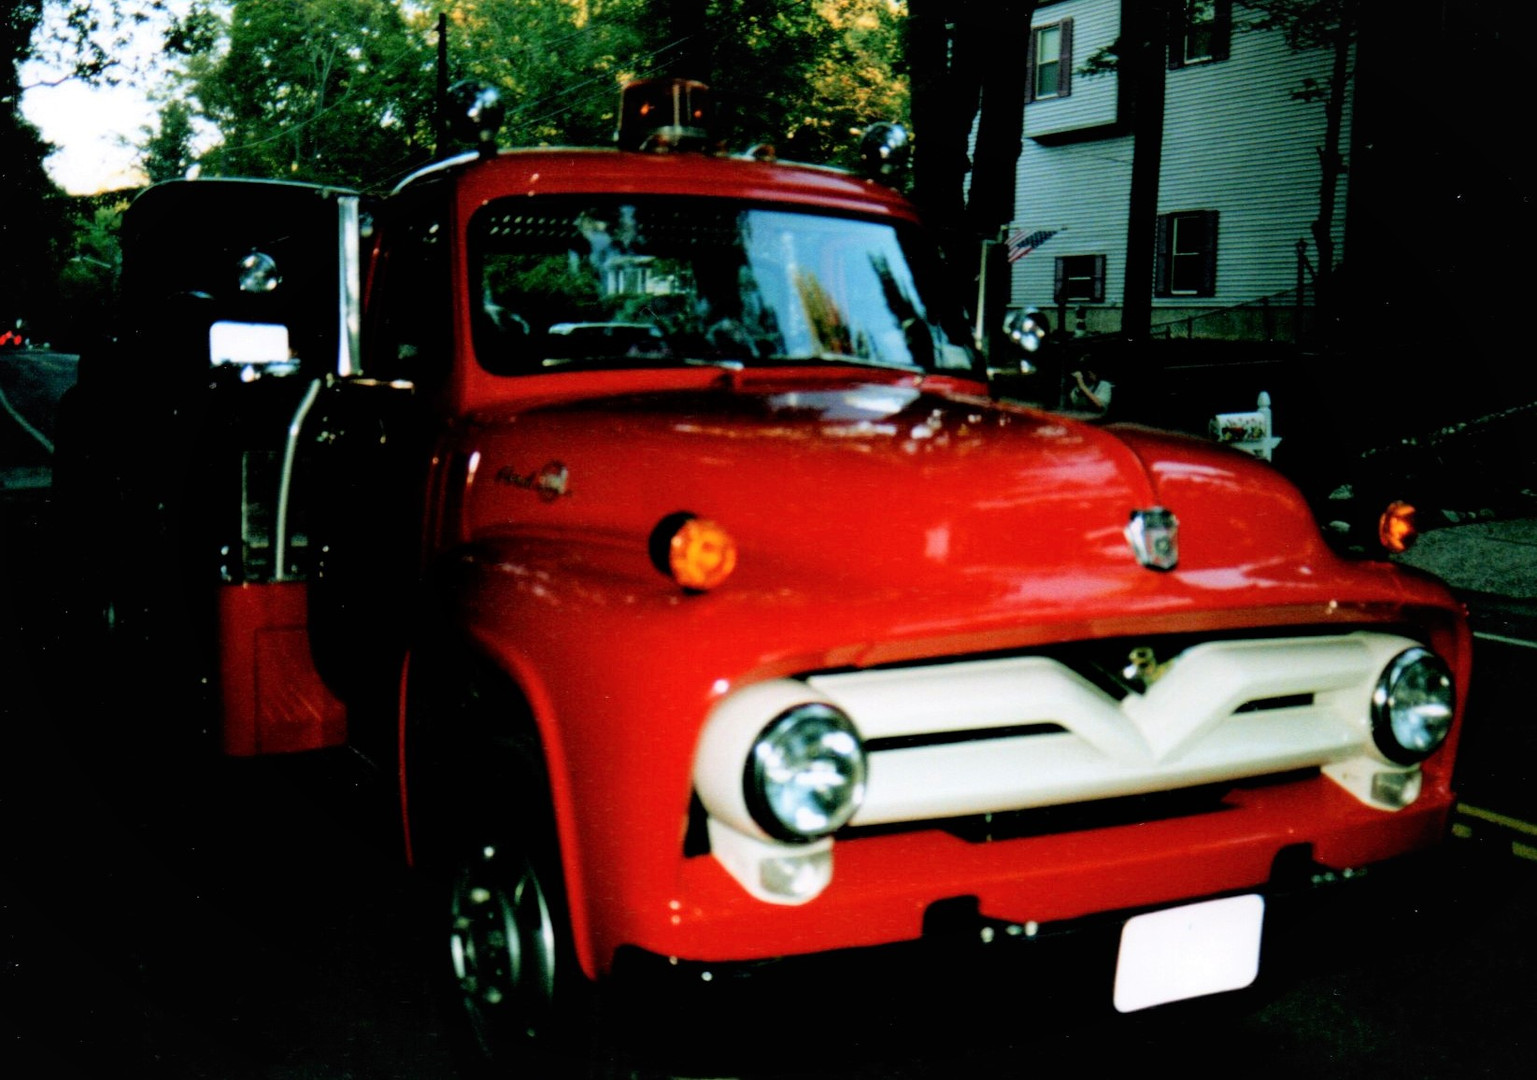 1955 Ford F-600 flatbed - Floyd Chivvis